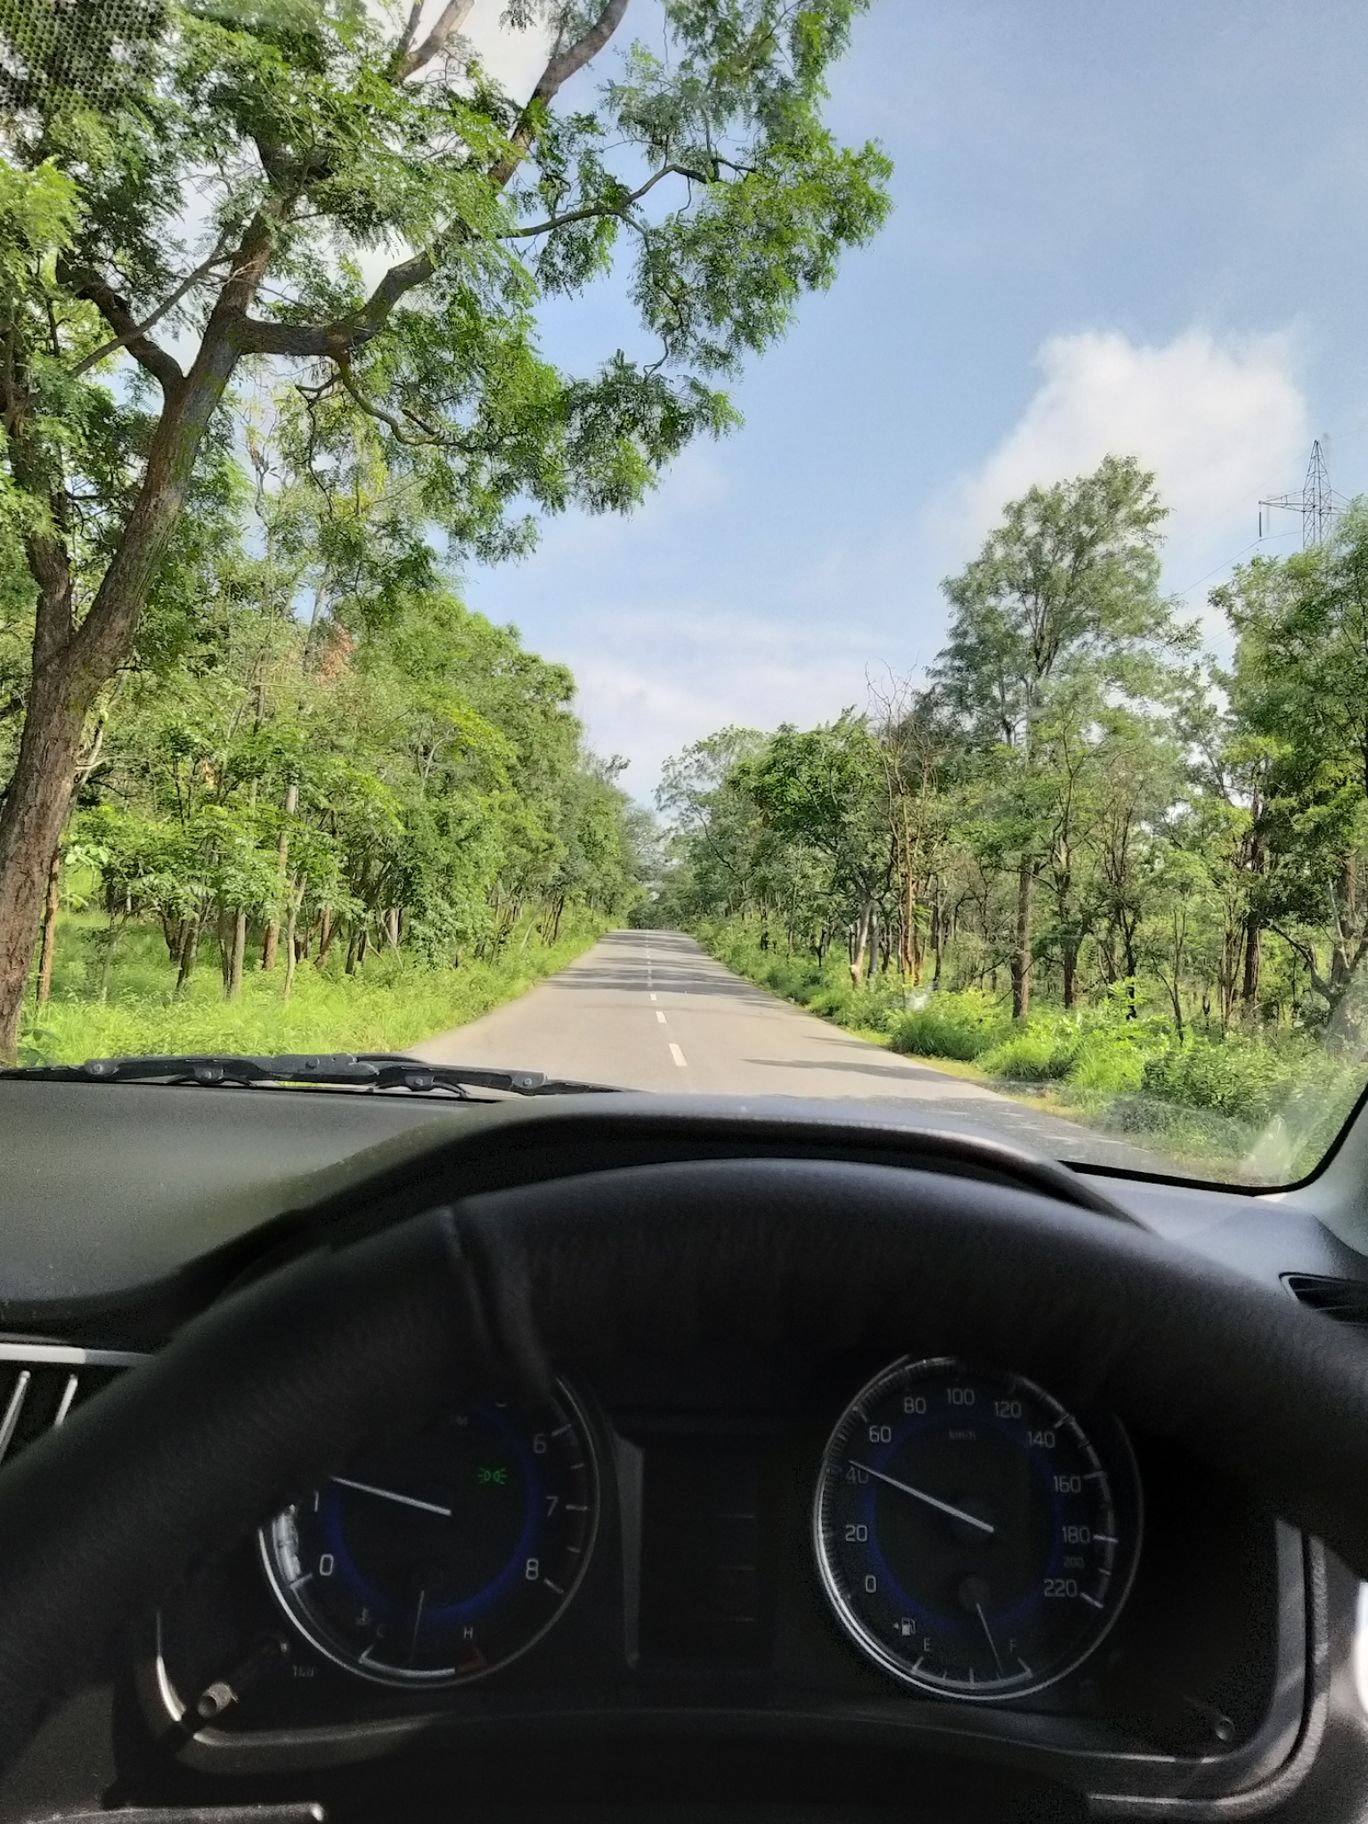 Photo of Nallamala Forest By Nature Lover